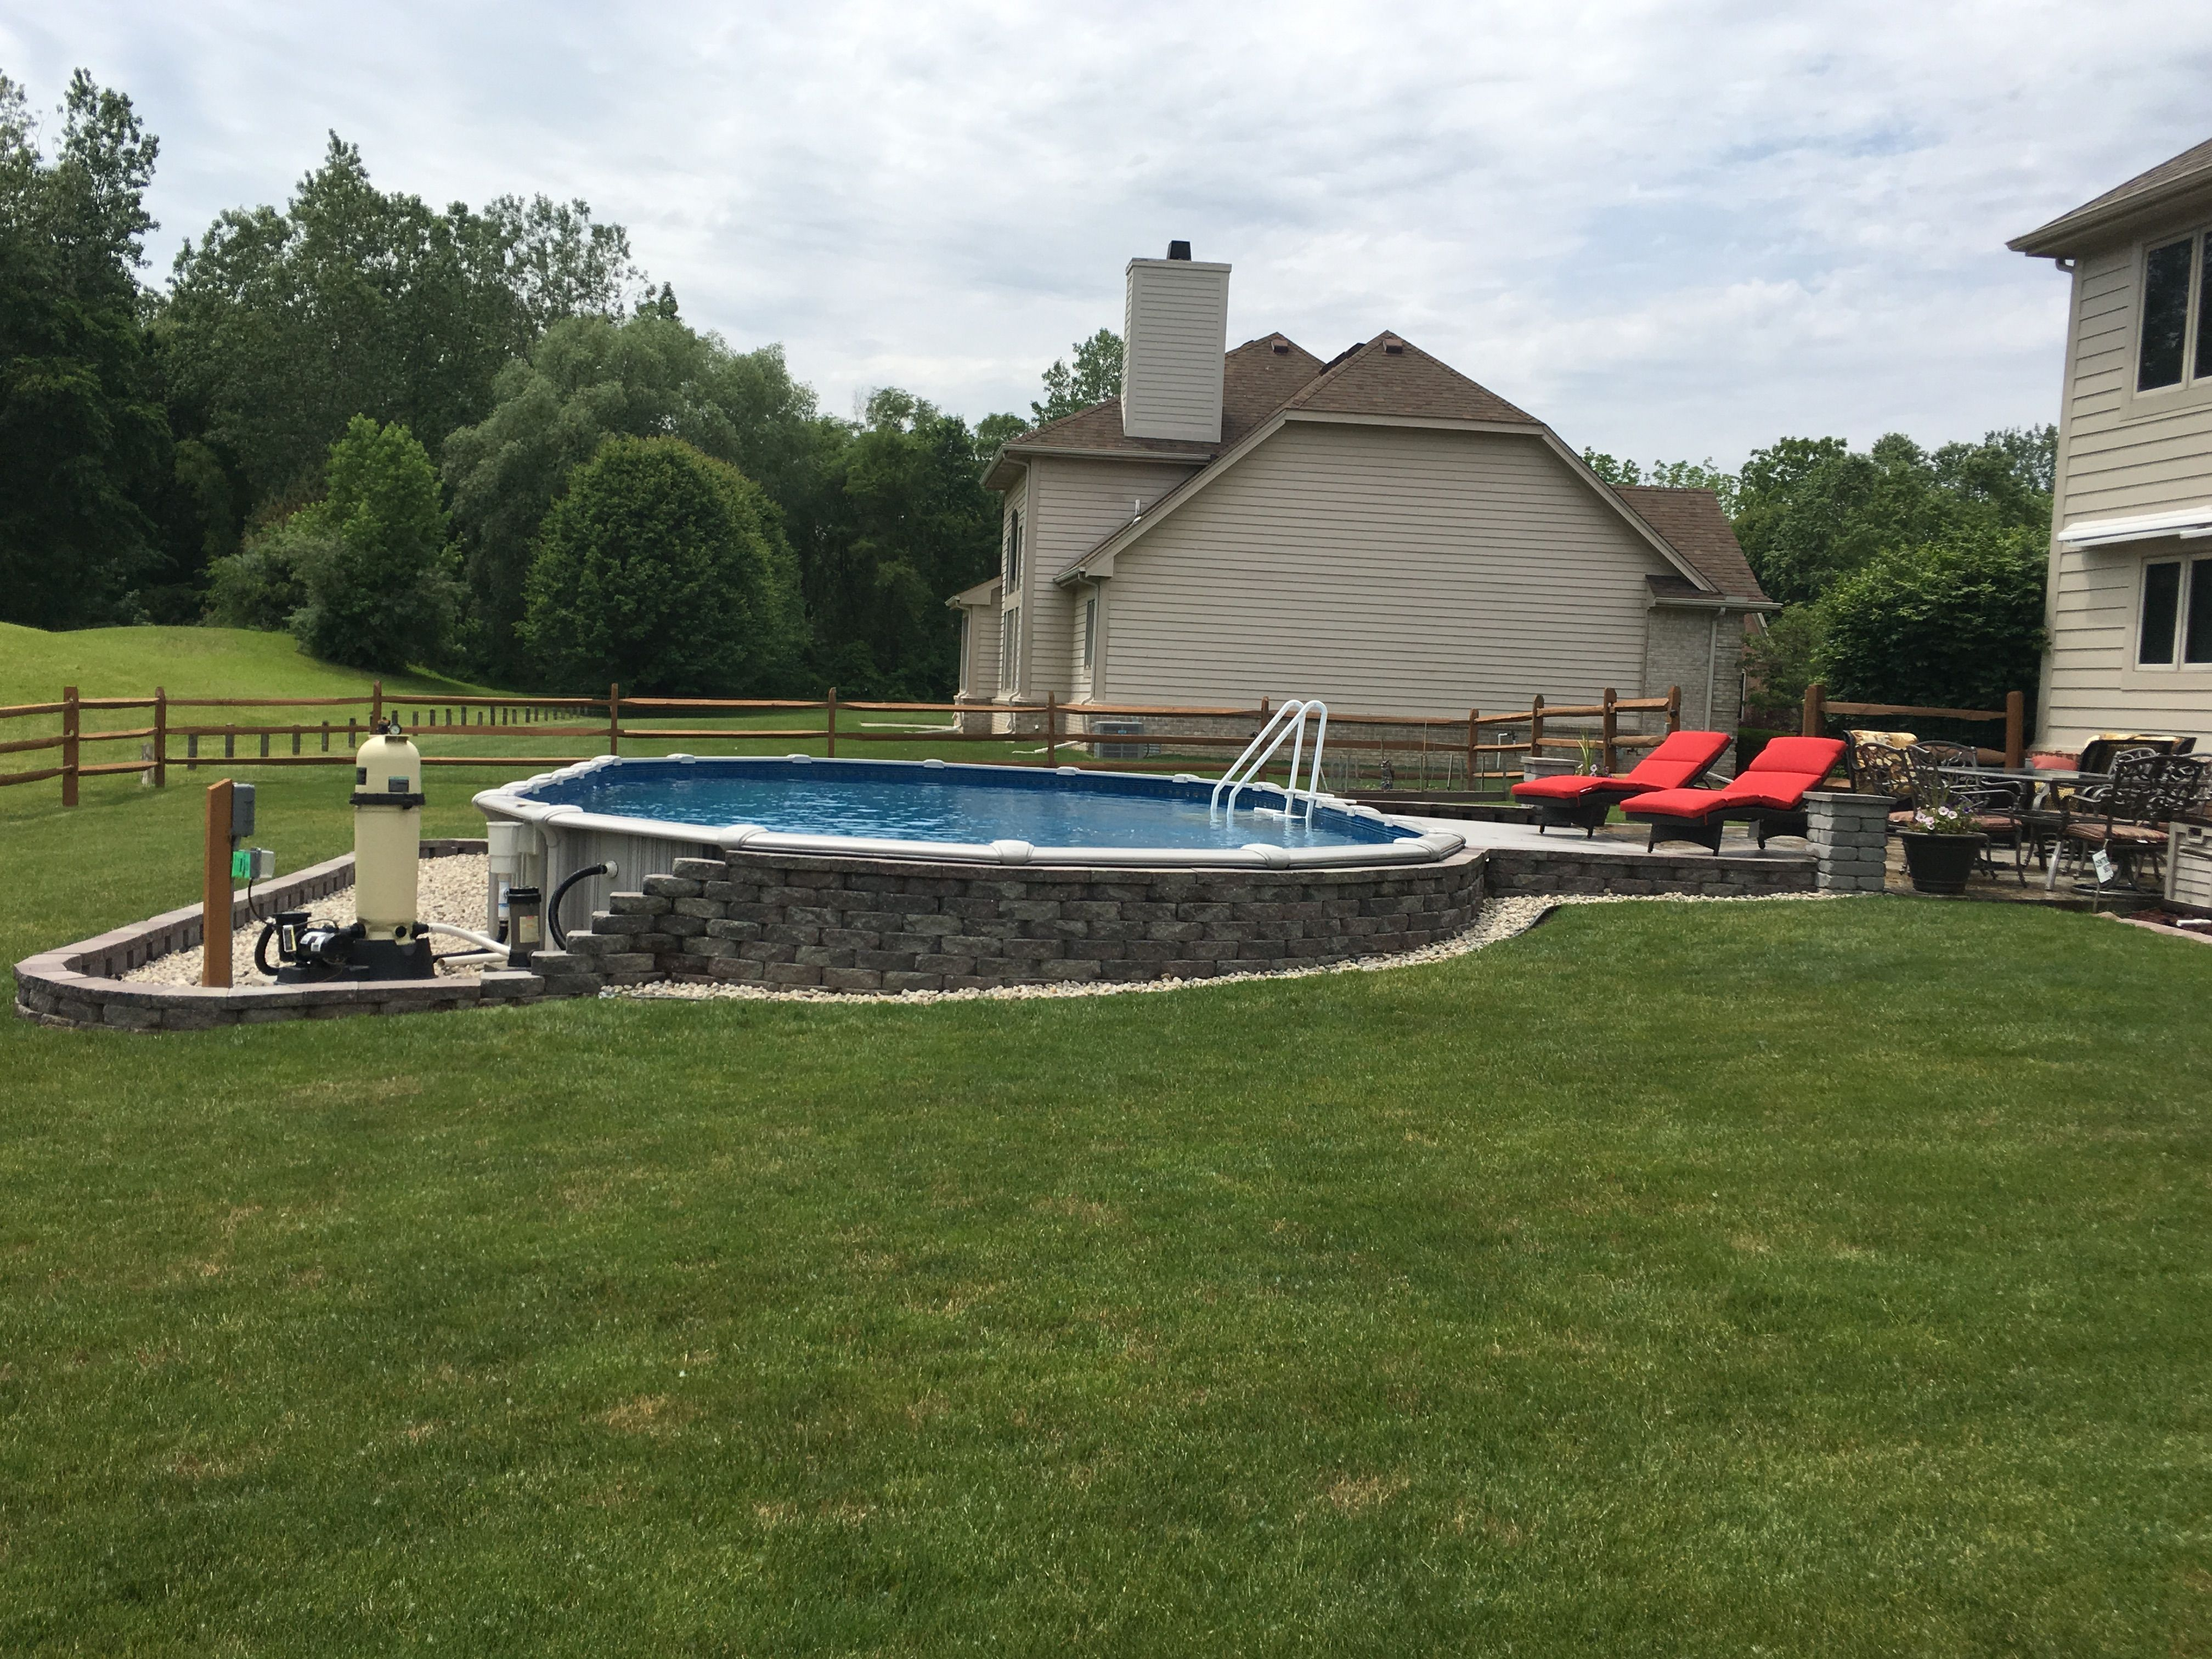 Pin By Melissa Knox On Above Ground Pool 2019 Goal